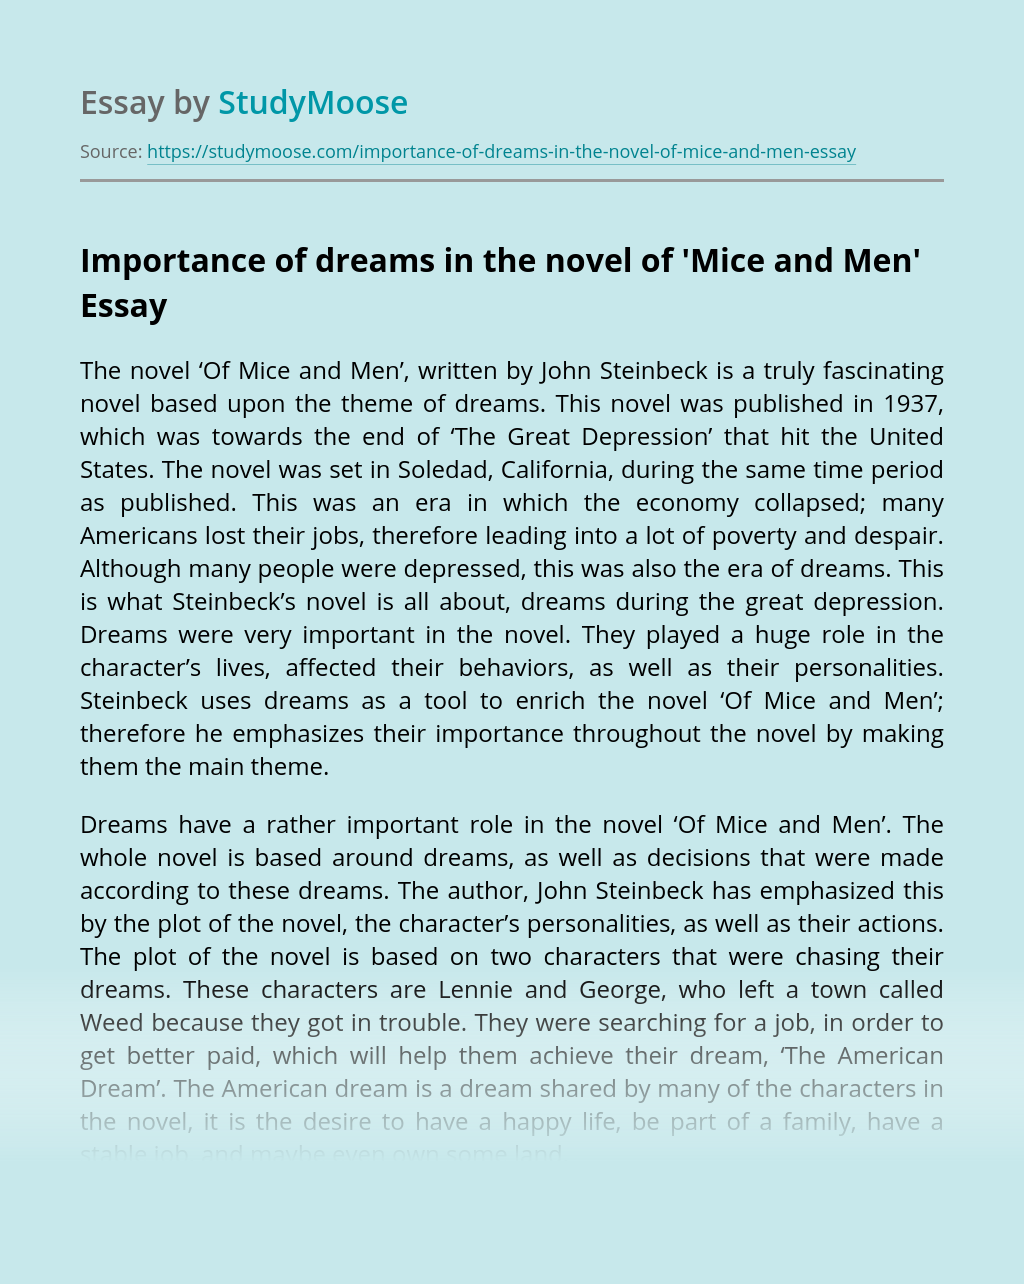 Importance of dreams in the novel of 'Mice and Men'